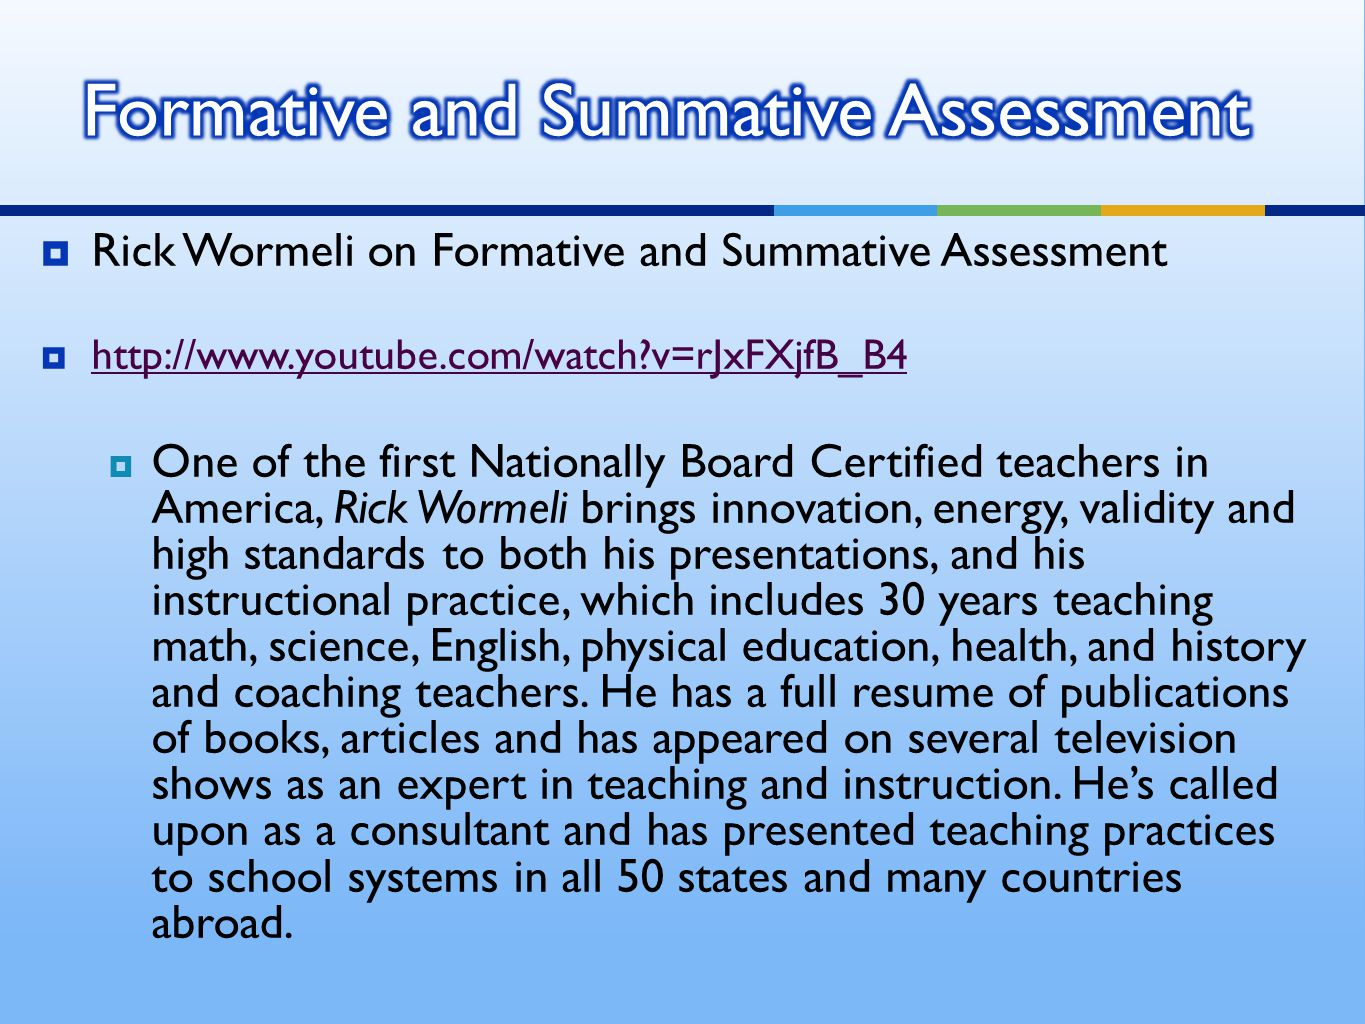  Rick Wormeli on Formative and Summative Assessment  http://www.youtube.com/watch v=rJxFXjfB_B4 http://www.youtube.com/watch v=rJxFXjfB_B4  One of the first Nationally Board Certified teachers in America, Rick Wormeli brings innovation, energy, validity and high standards to both his presentations, and his instructional practice, which includes 30 years teaching math, science, English, physical education, health, and history and coaching teachers.